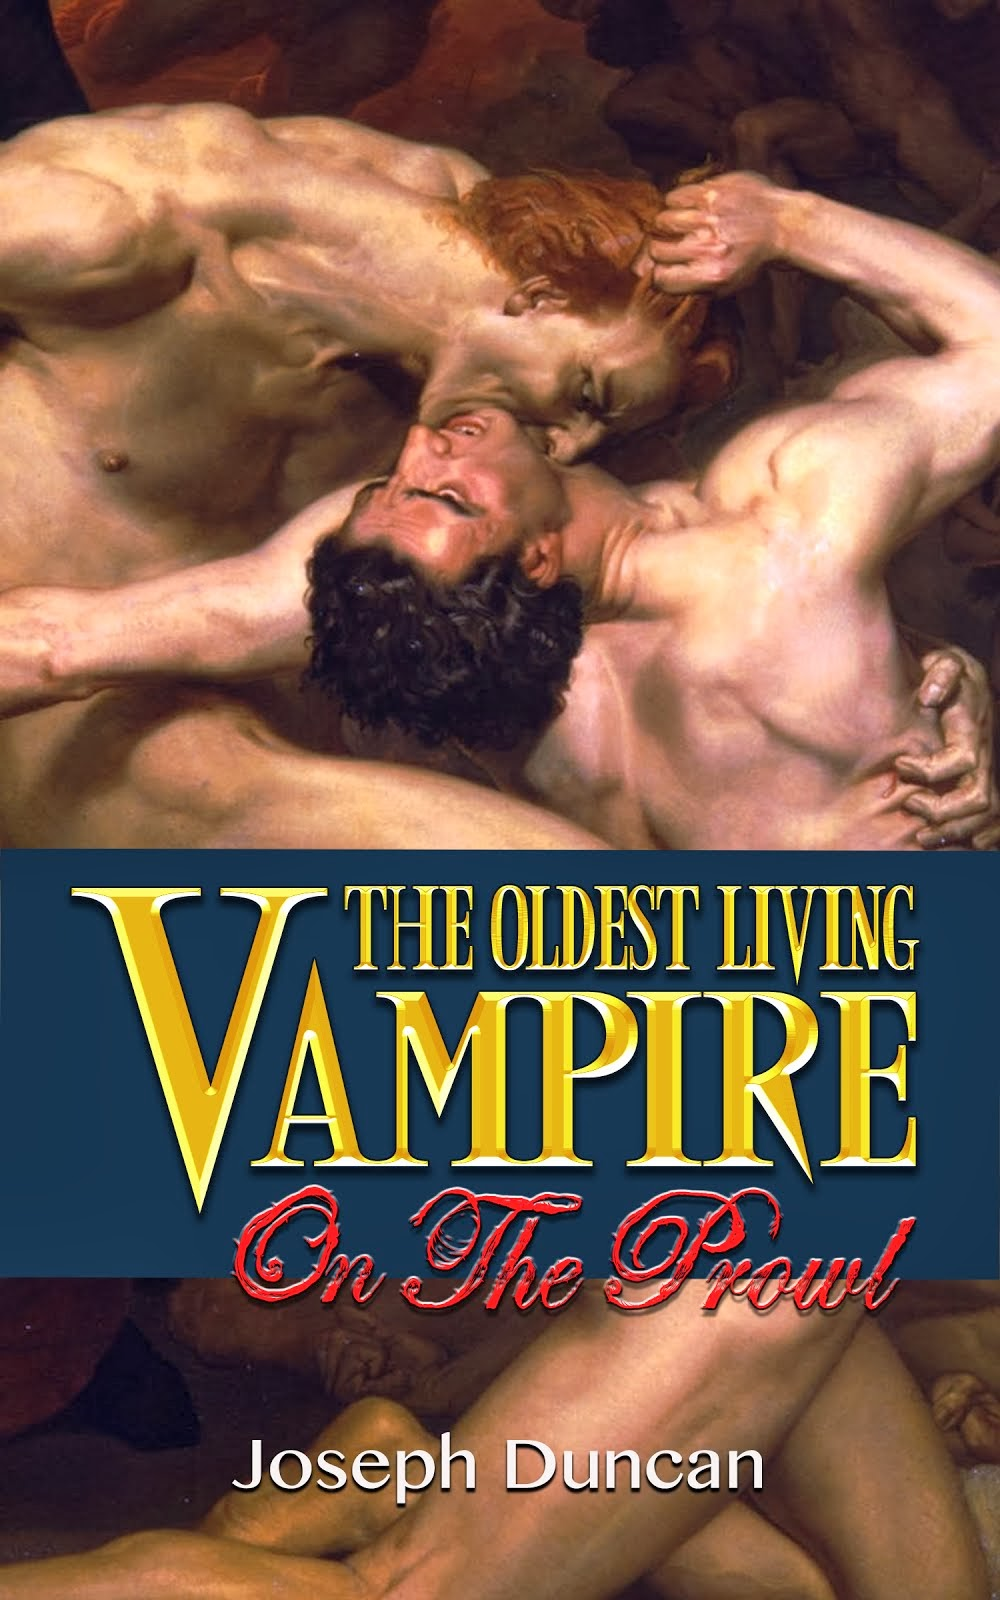 The Oldest Living Vampire on the Prowl